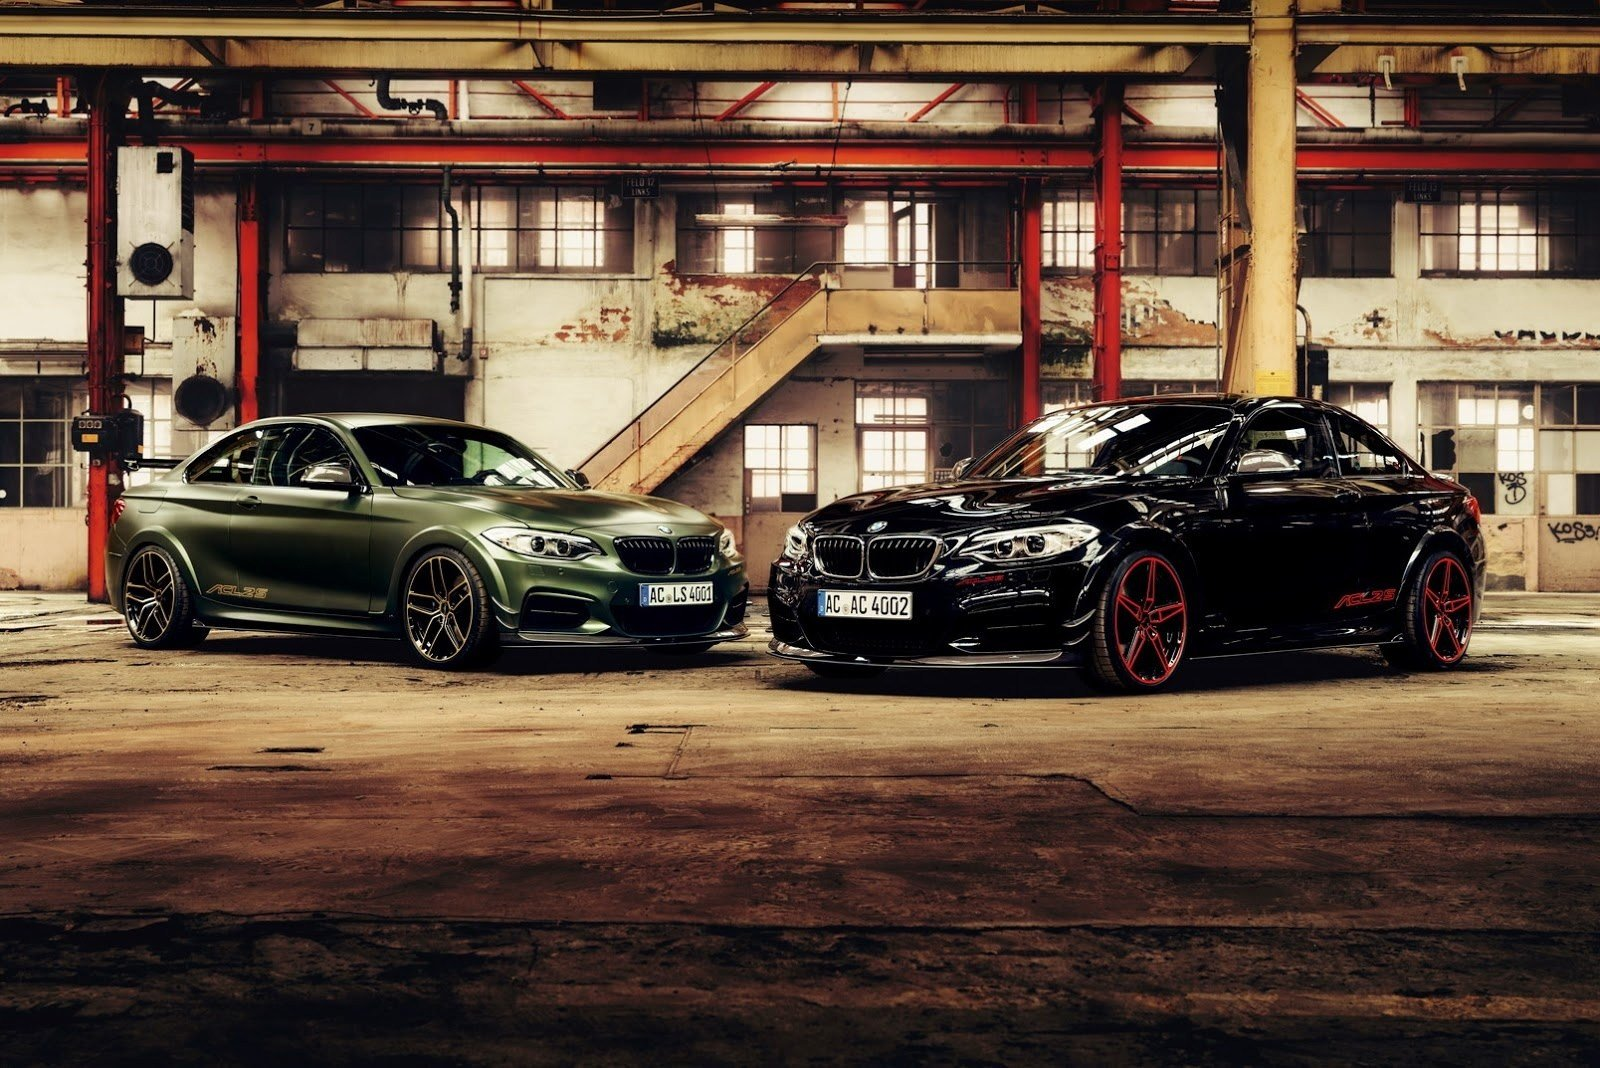 Latest Ac Schnitzer Bmw M240I Cars Acl2S Cars Modified Wallpaper Free Download